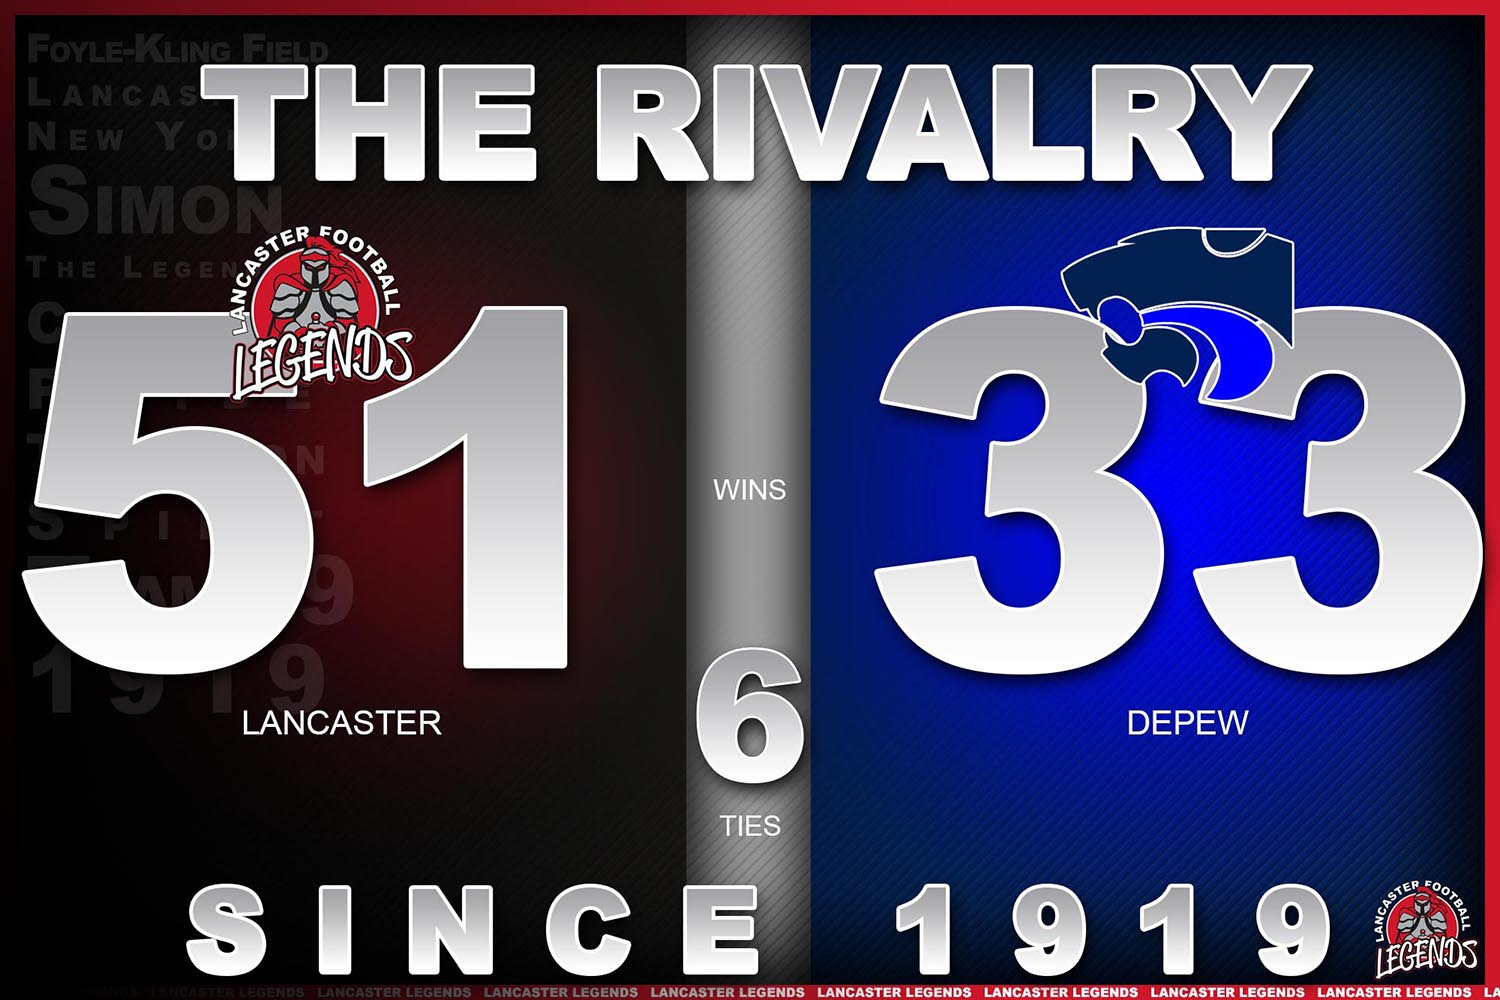 Lancaster vs Depew Comparison